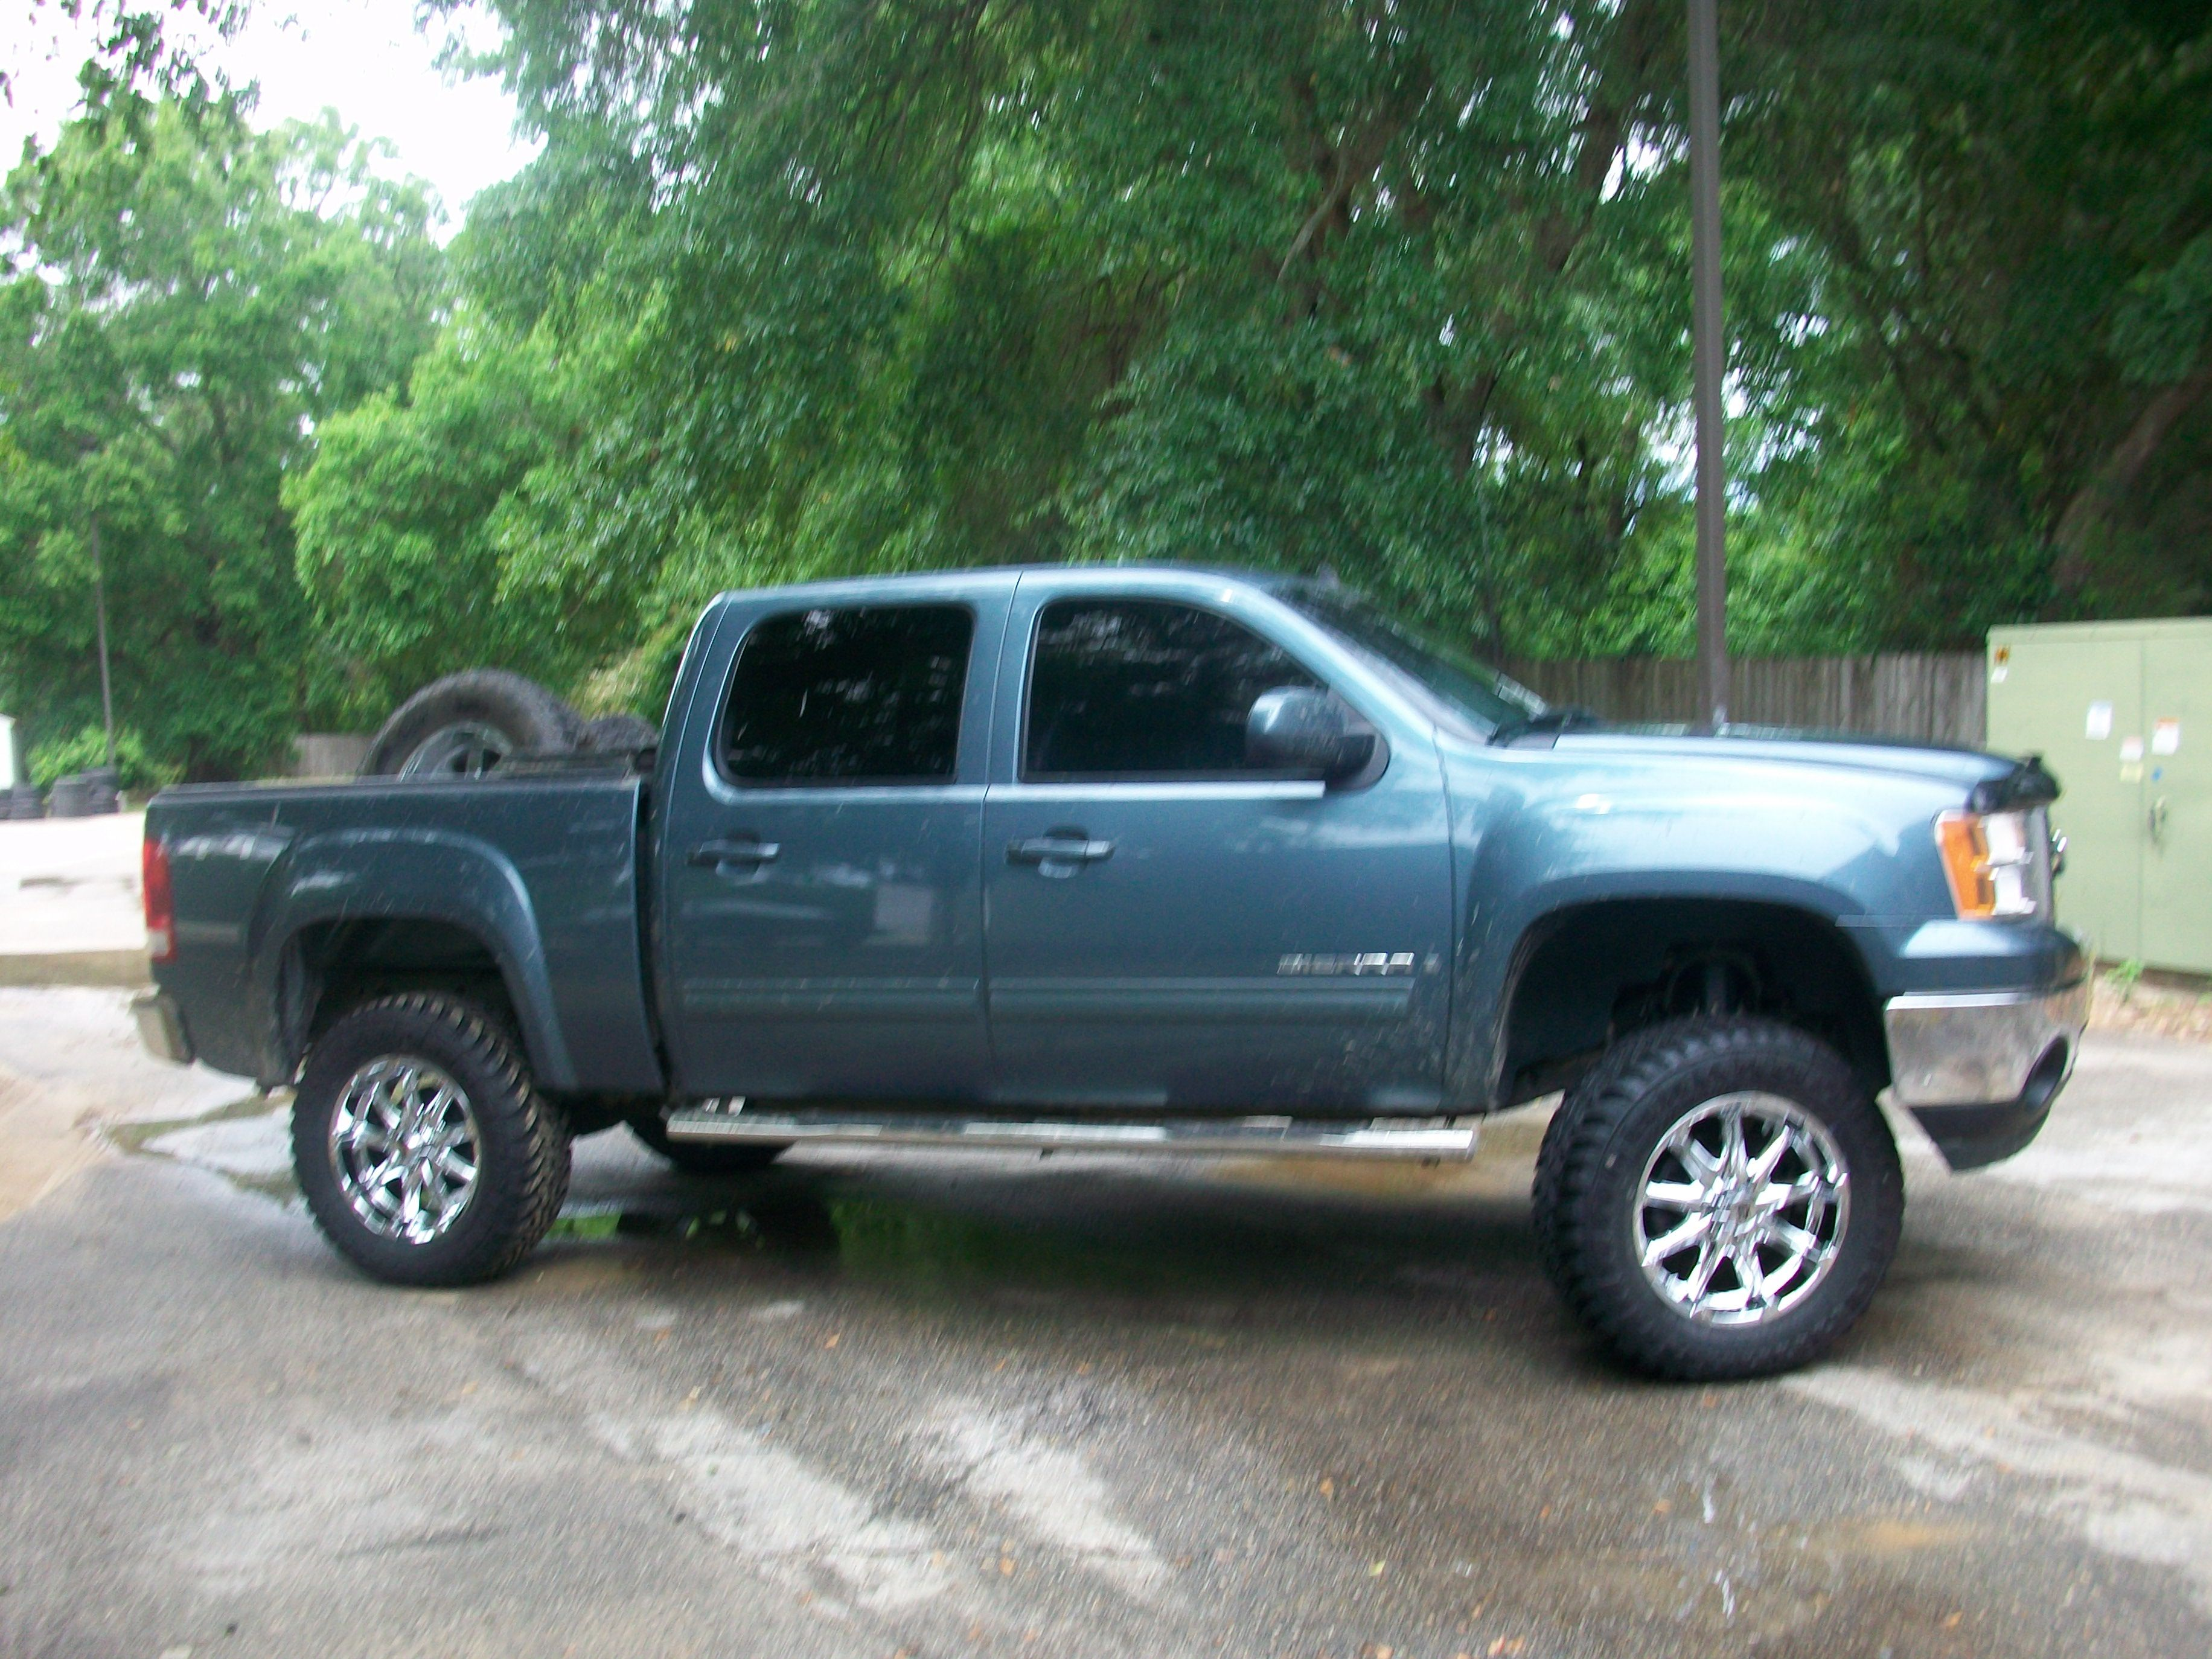 Check out Barkley Moody s 2007 GMC Sierra 4X4 sporting new wheels